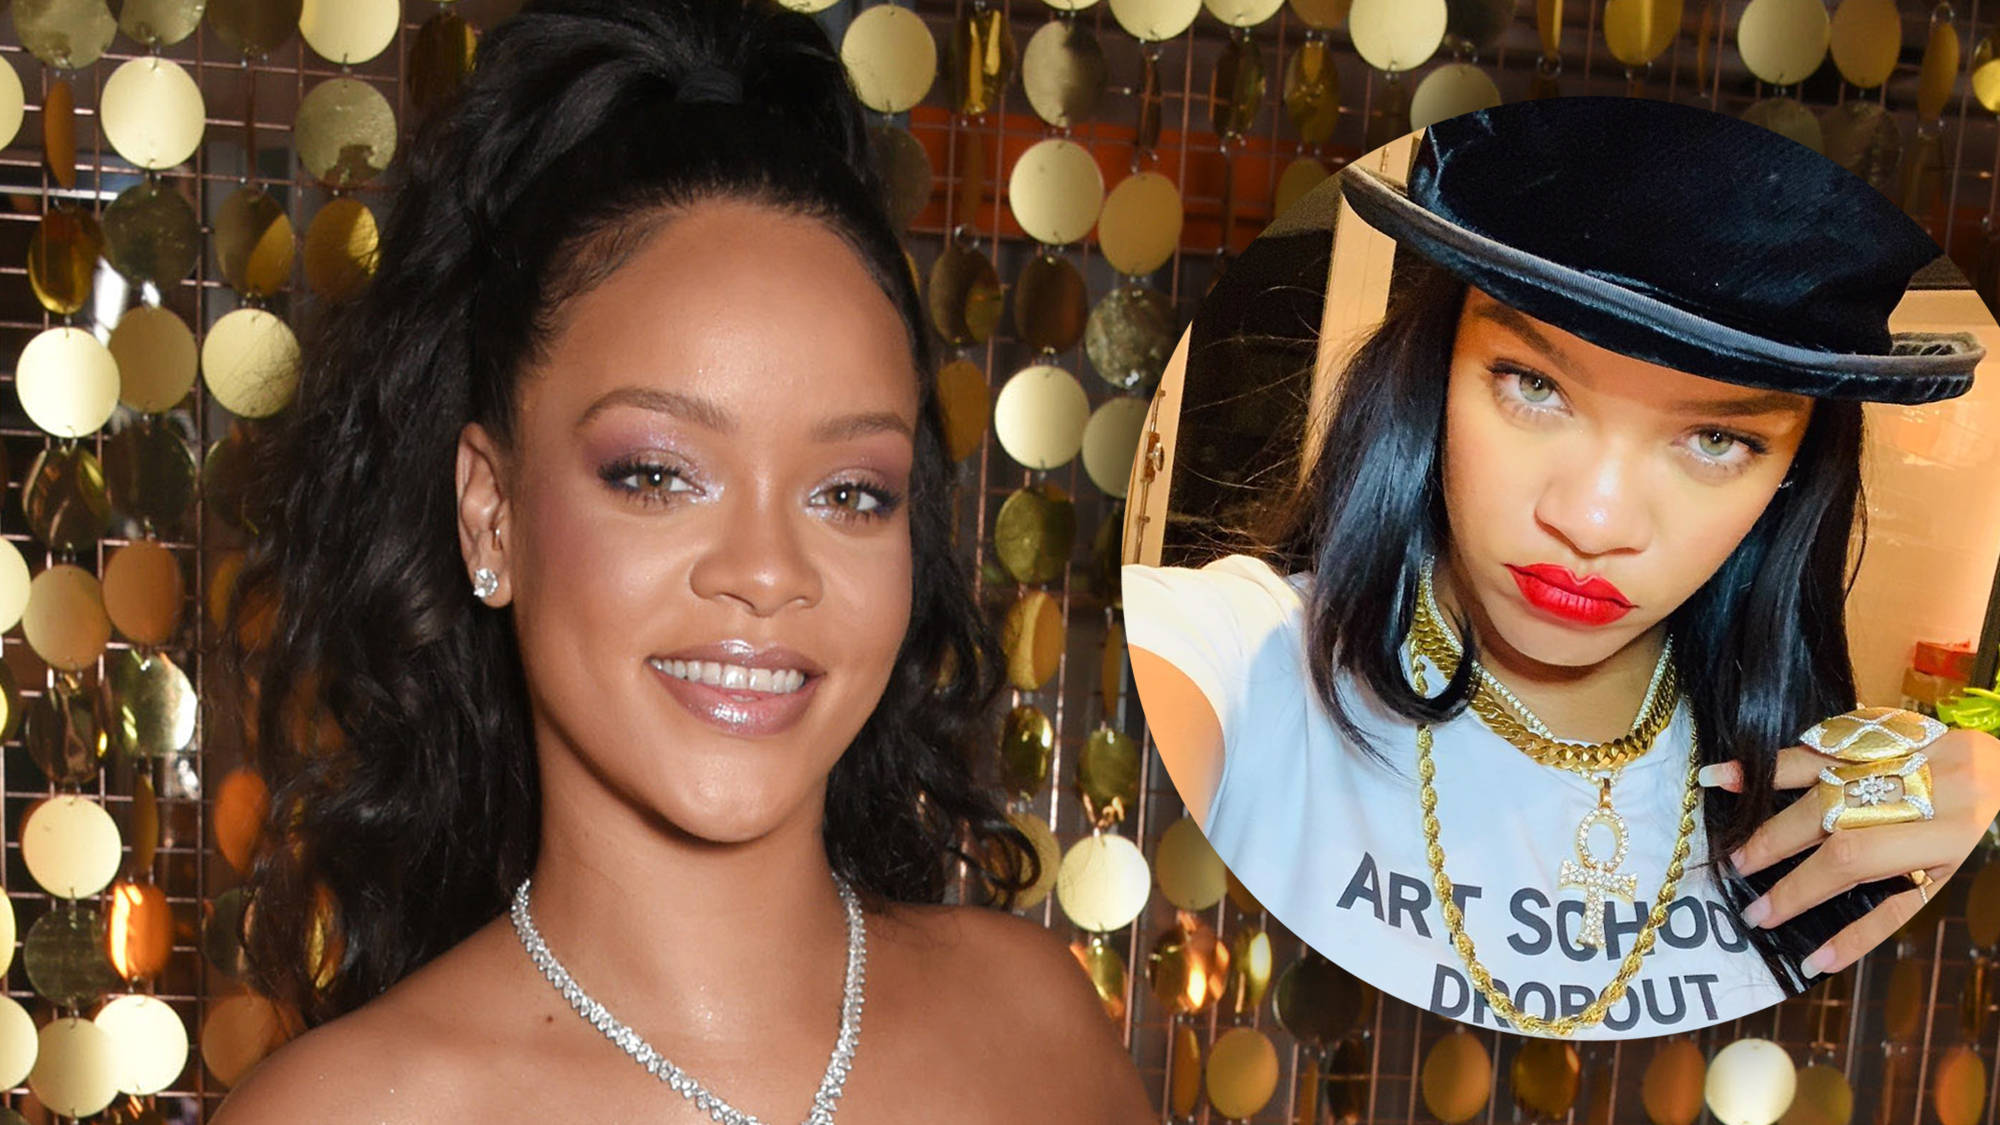 Rihanna fans convinced she revealed her new album's title in an Instagram post